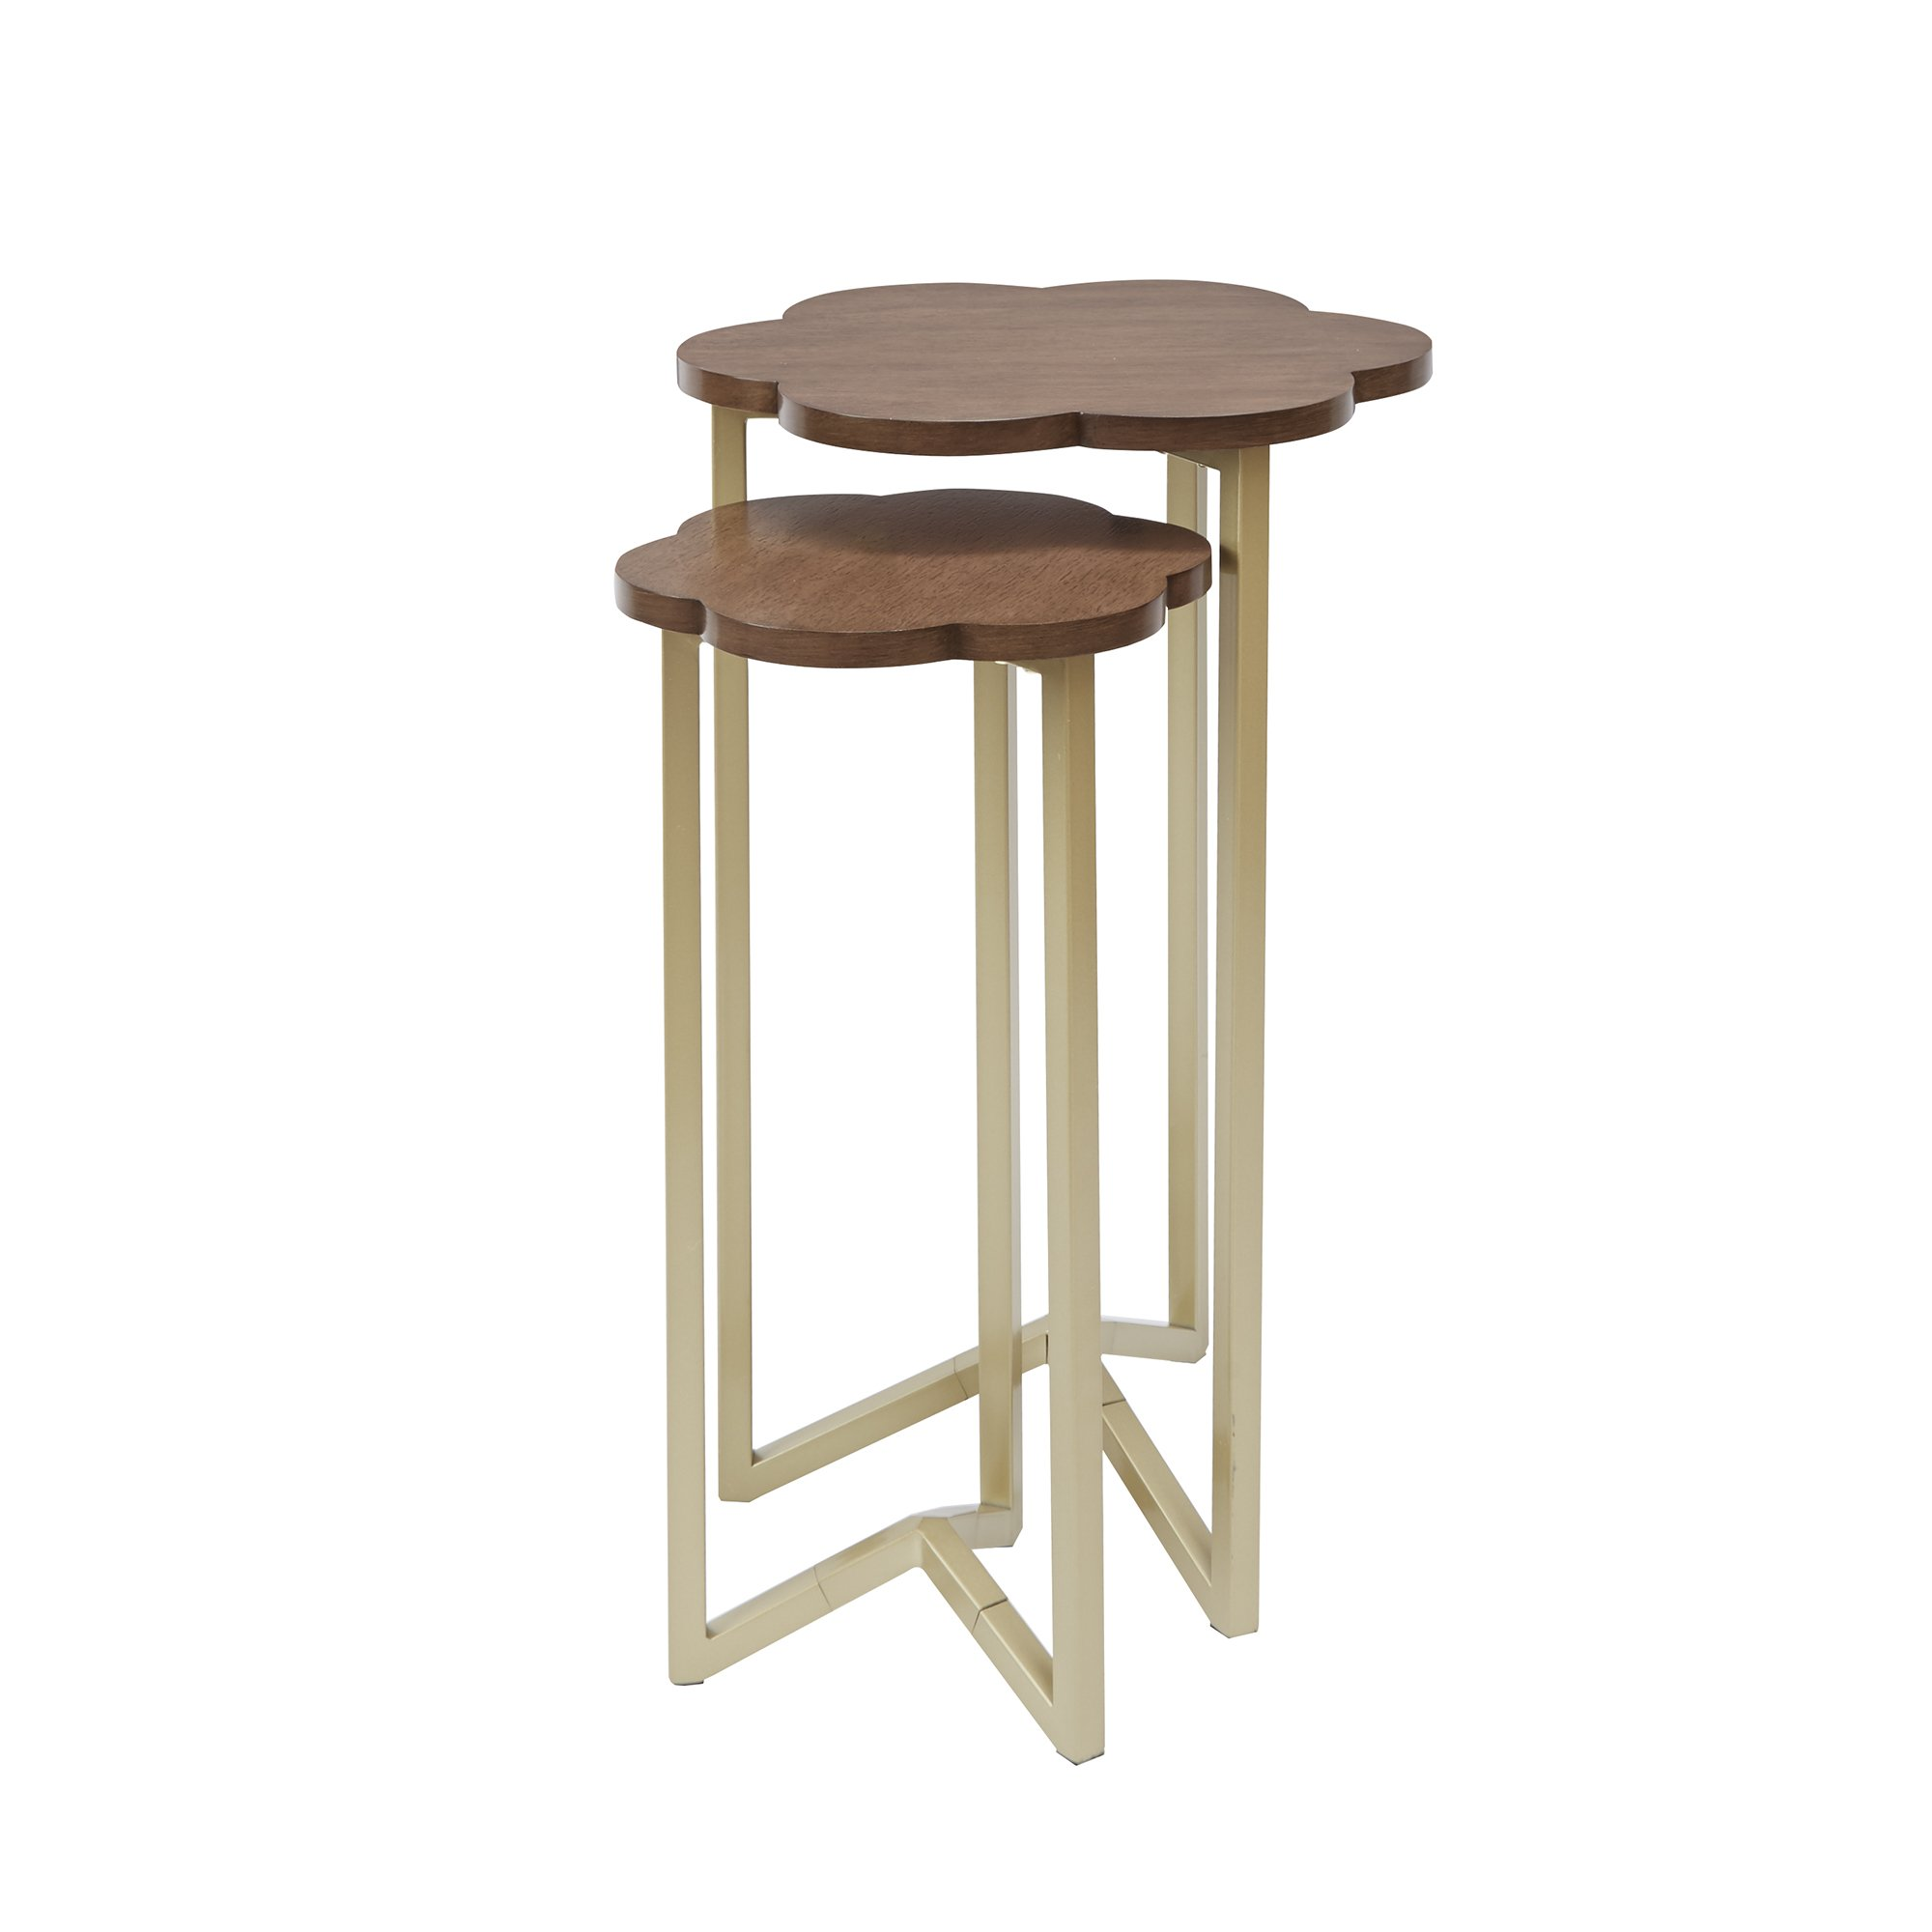 Silverwood FT1263-GLD-RGR Daphne Nesting Accent Tables (2pc), 17'' DIA x 27'' H